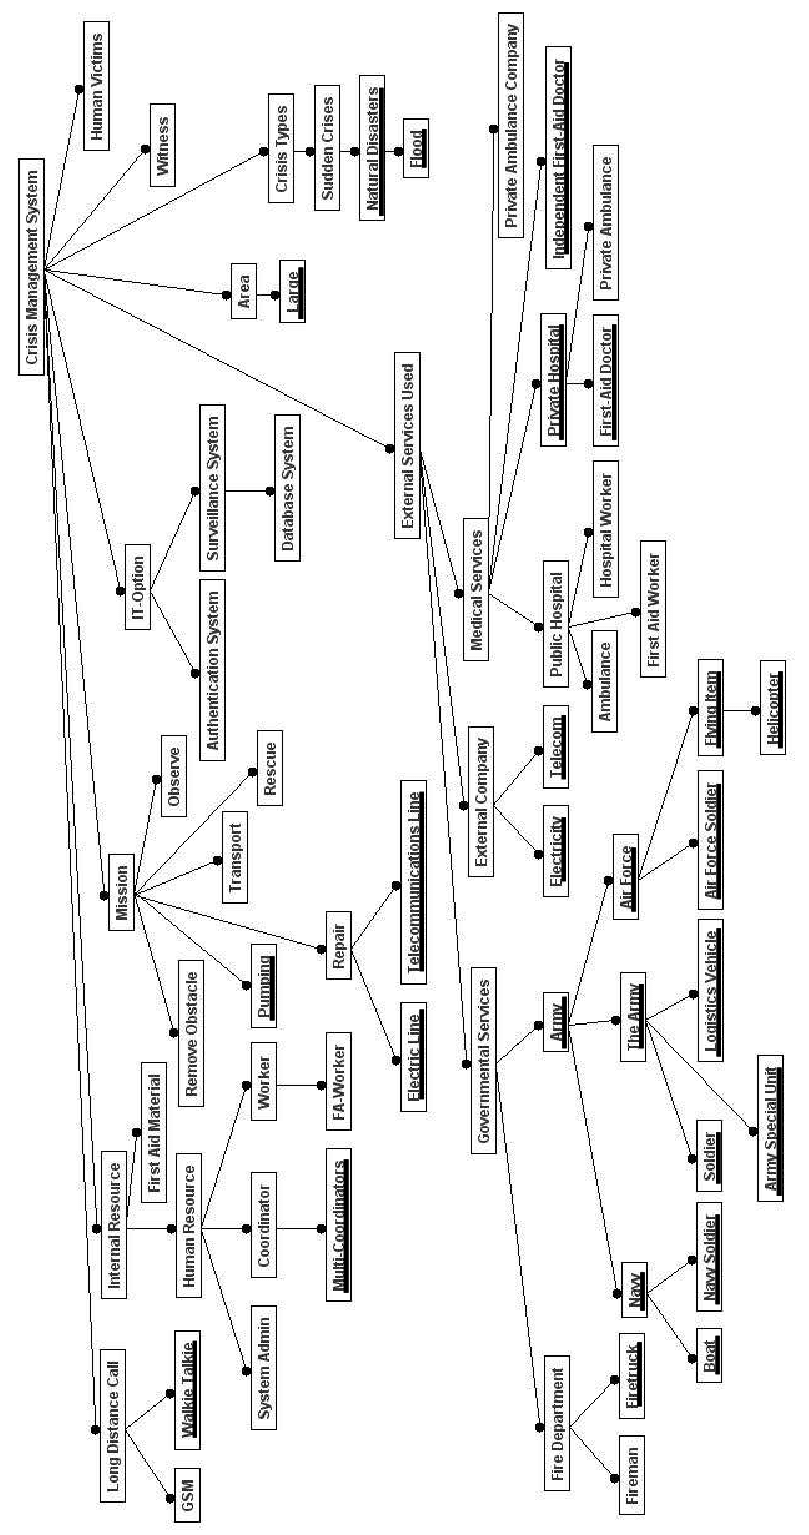 medium resolution of configuration model for a flood crisis management system